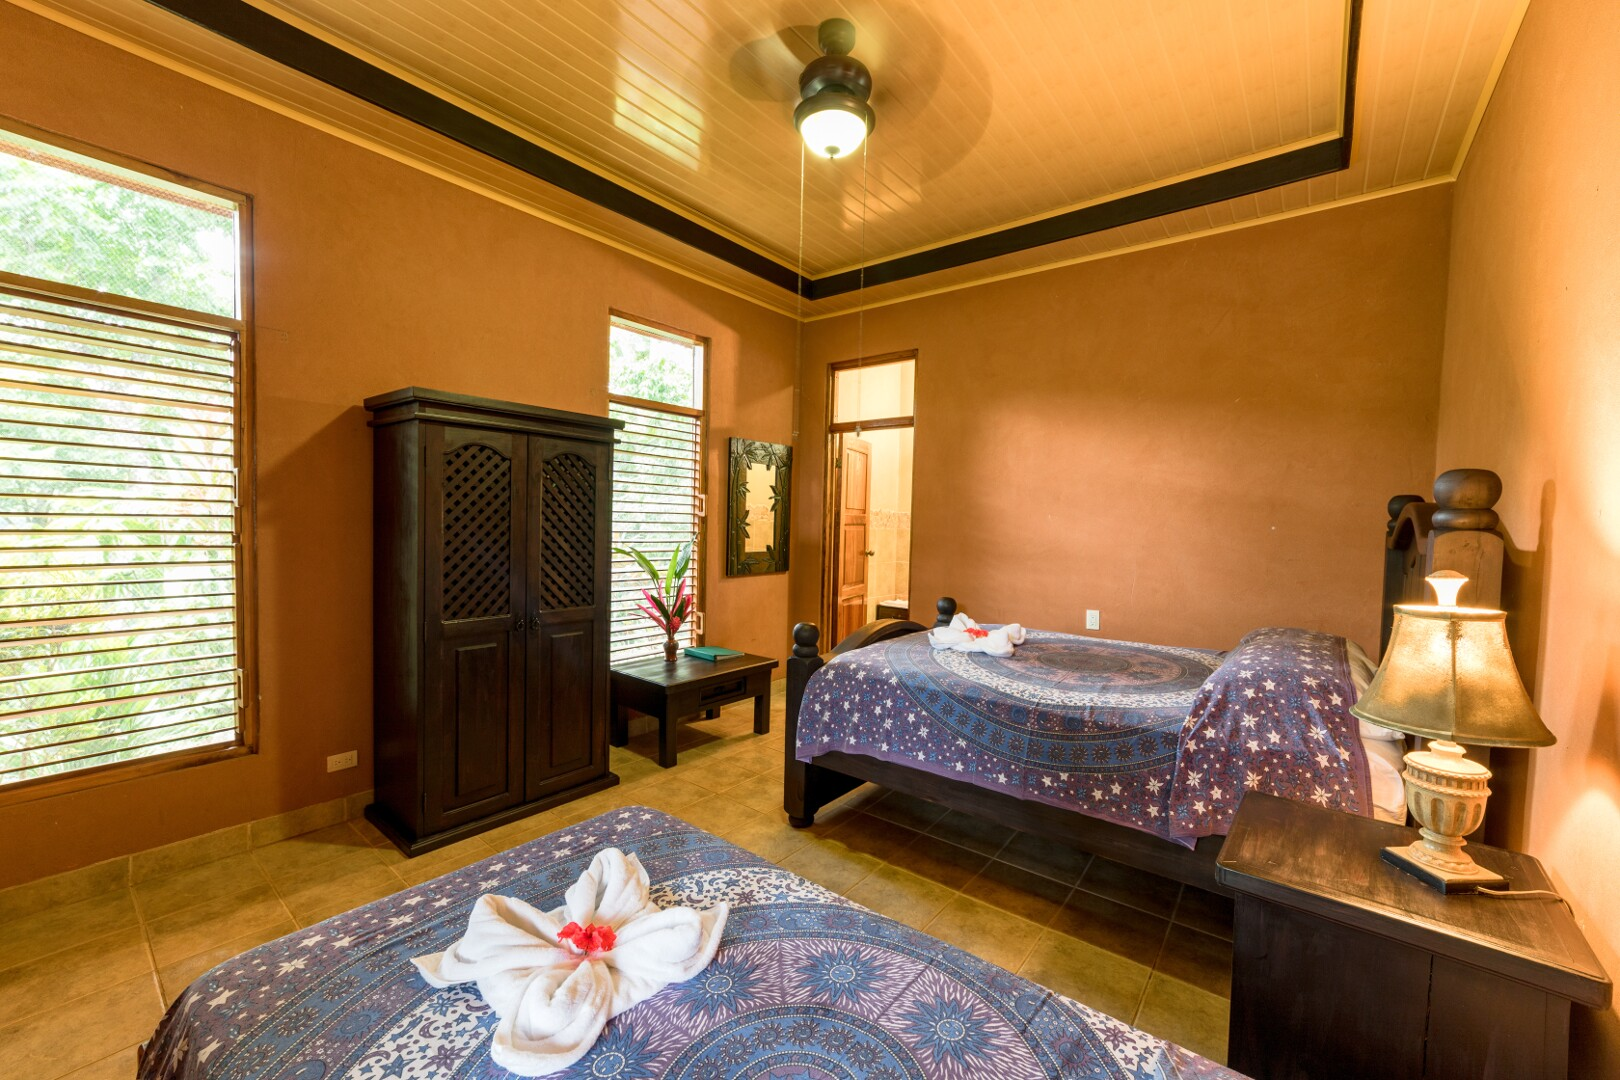 Hacienda-room-2-